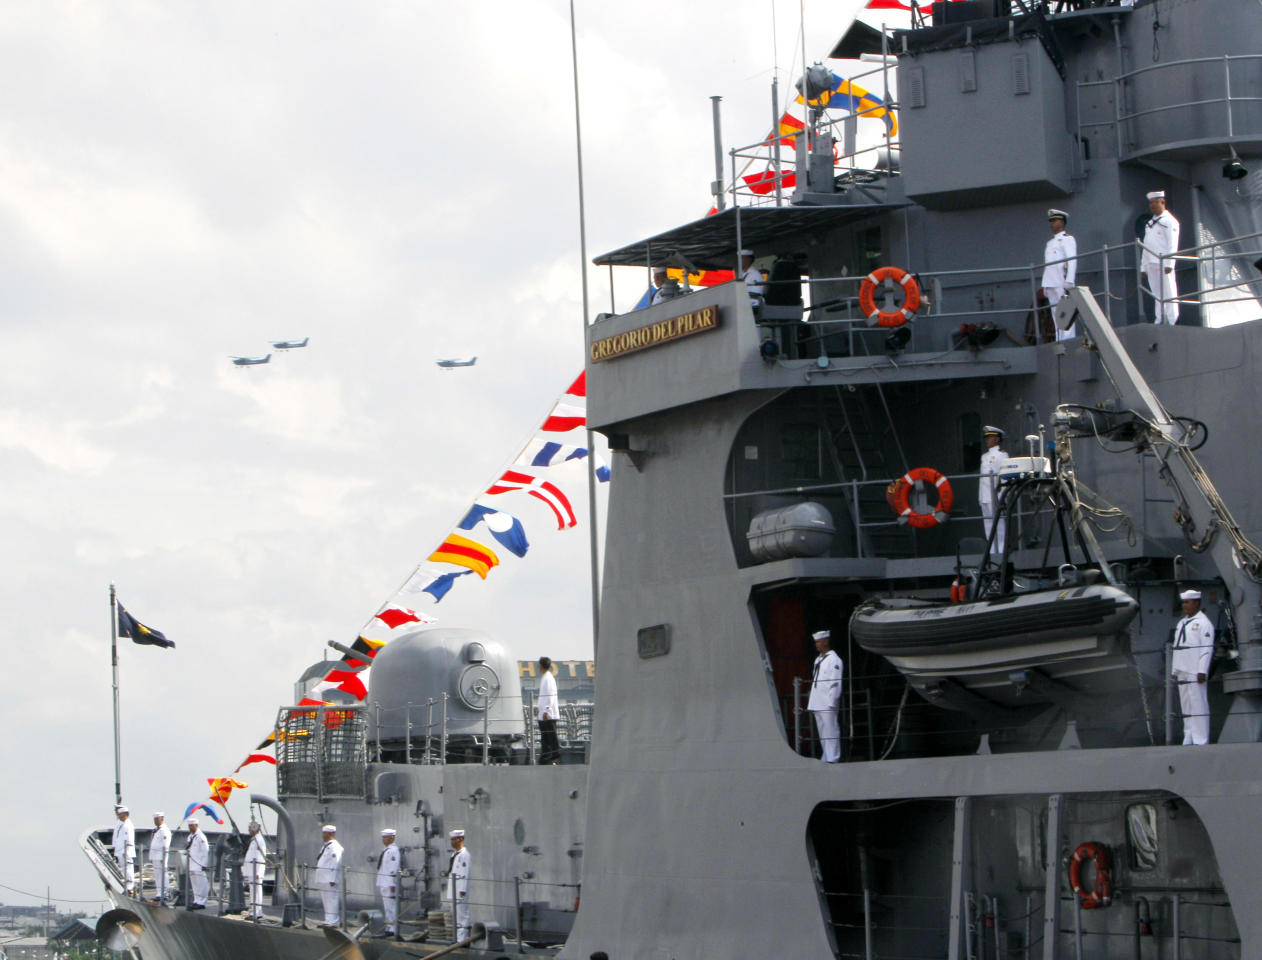 Philippine Navy small aircrafts fly over the country's newly-acquired Hamilton class warship BRP Gregorio Del Pilar (PF15) during commissioning ceremony Wednesday, Dec. 14, 2011 at the Manila South Harbor in Manila, Philippines. The country's biggest and most modern warship will be deployed to the volatile South China Sea, according to Philippine President Benigno Aquino III. (AP Photo/Bullit Marquez)